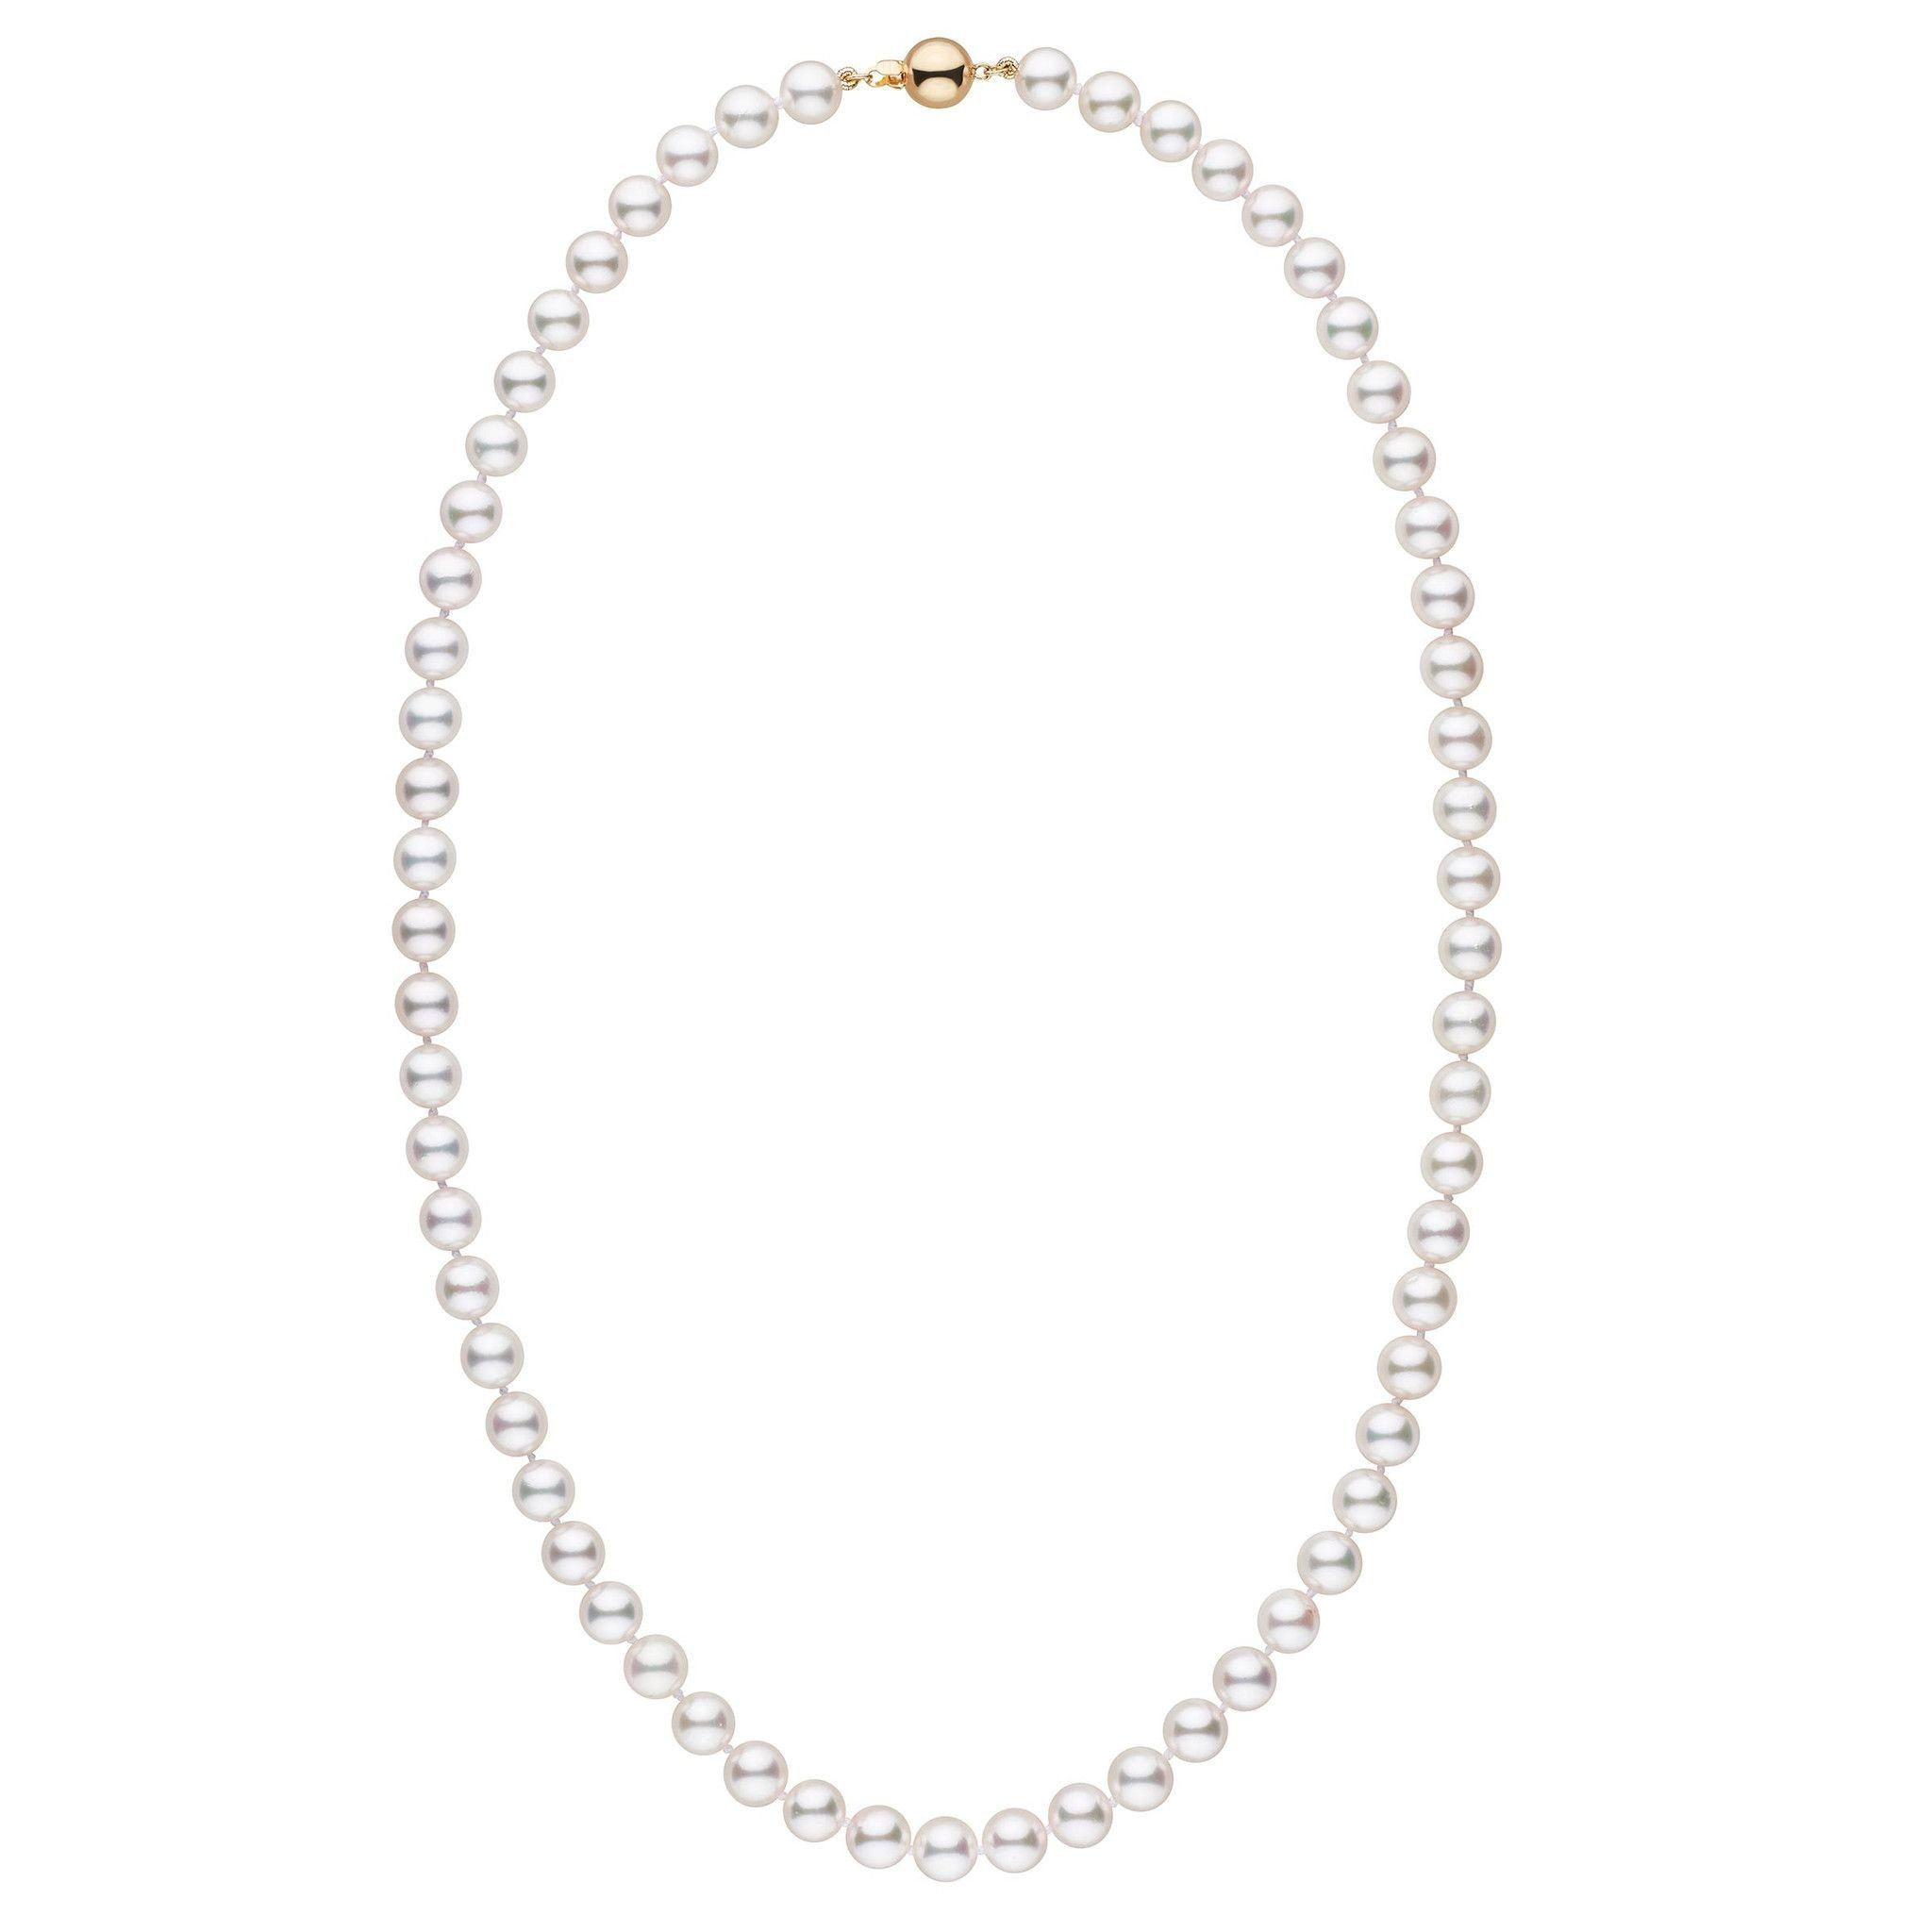 7.0-7.5 mm White Akoya 22 inch AAA Pearl Necklace by Pearl Paradise